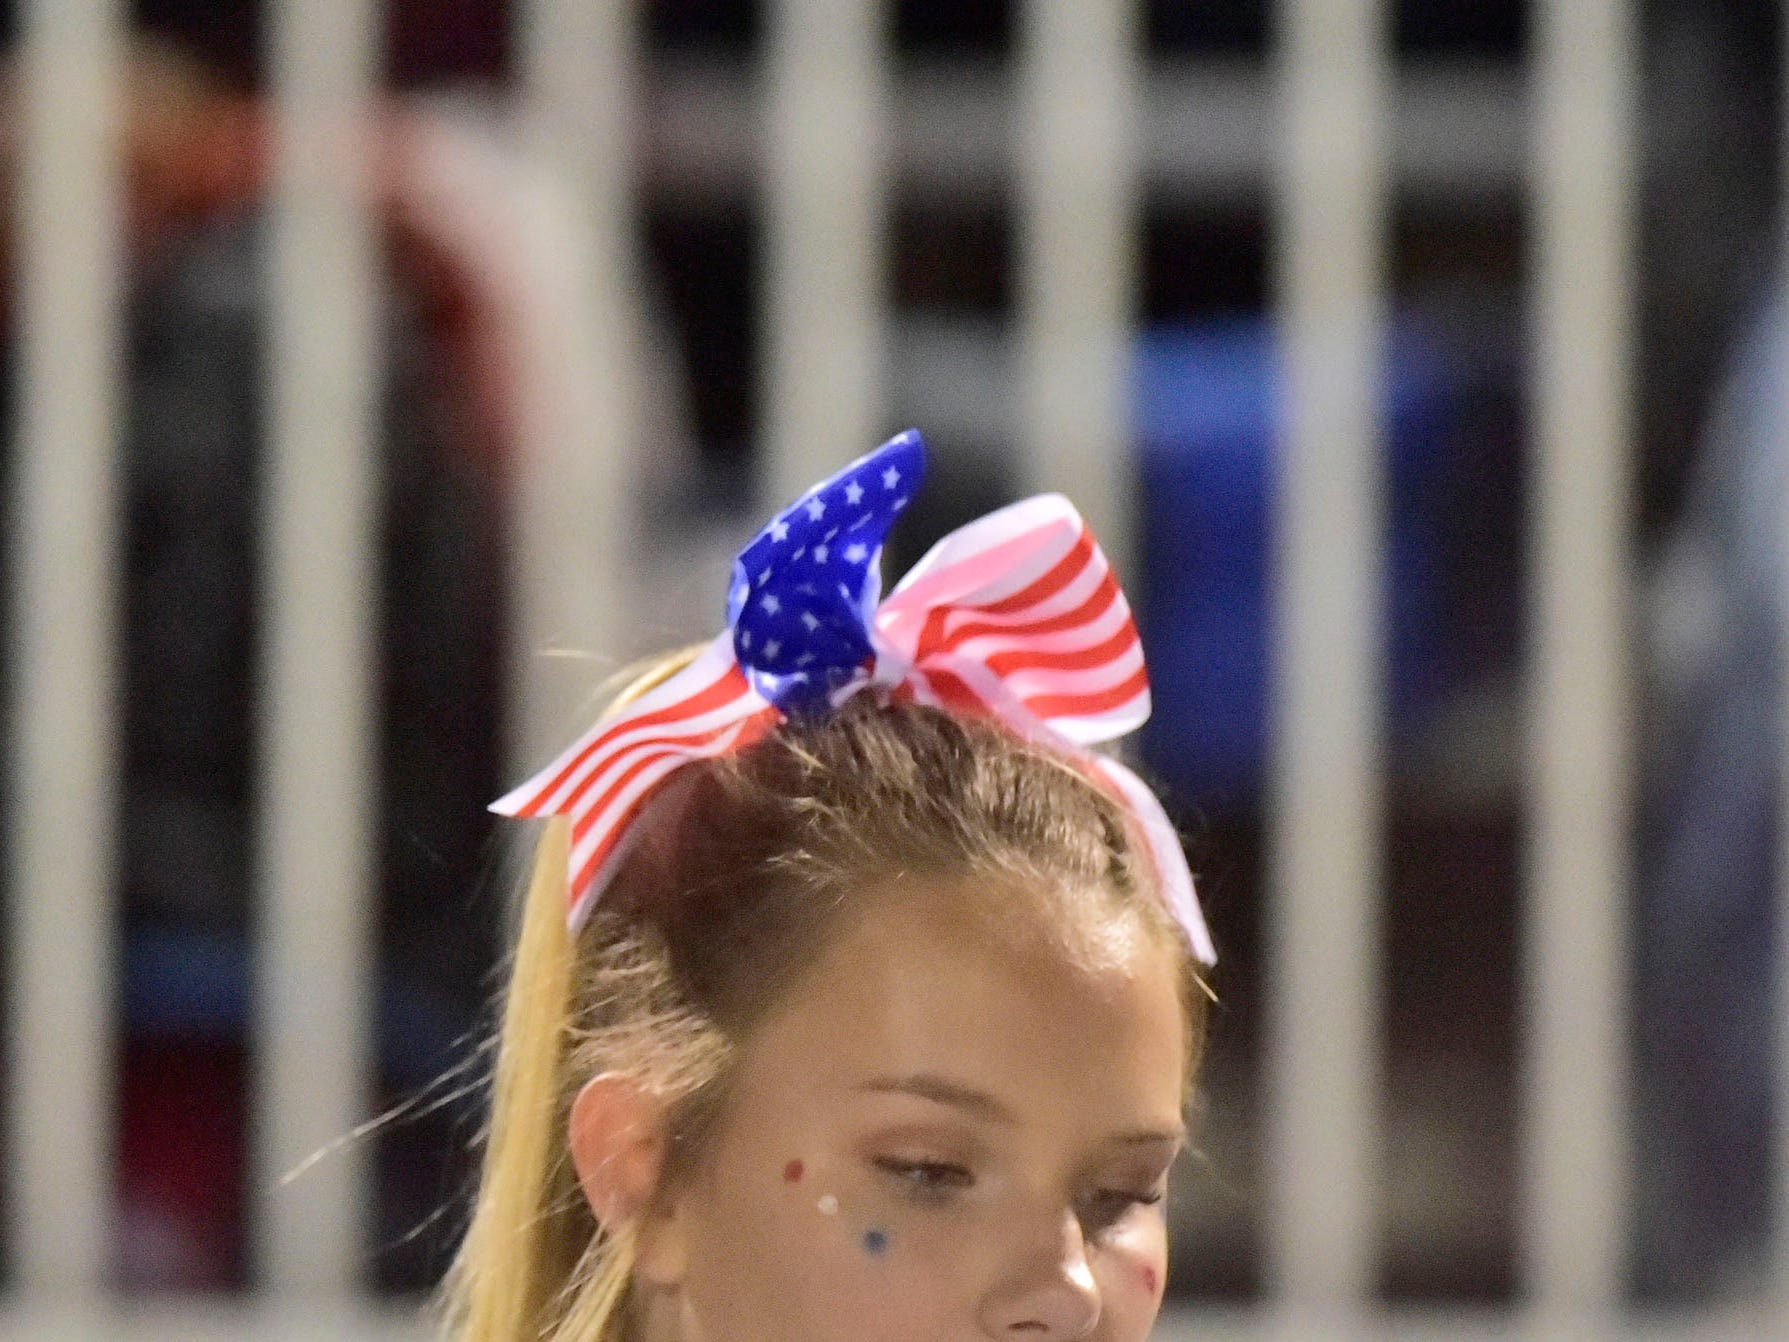 A Chambersburg cheerleader wears a U.S. flag inspired bow. Chambersburg dropped a 28-13 game against Harrisburg in PIAA football on Friday, Oct. 12, 2018.